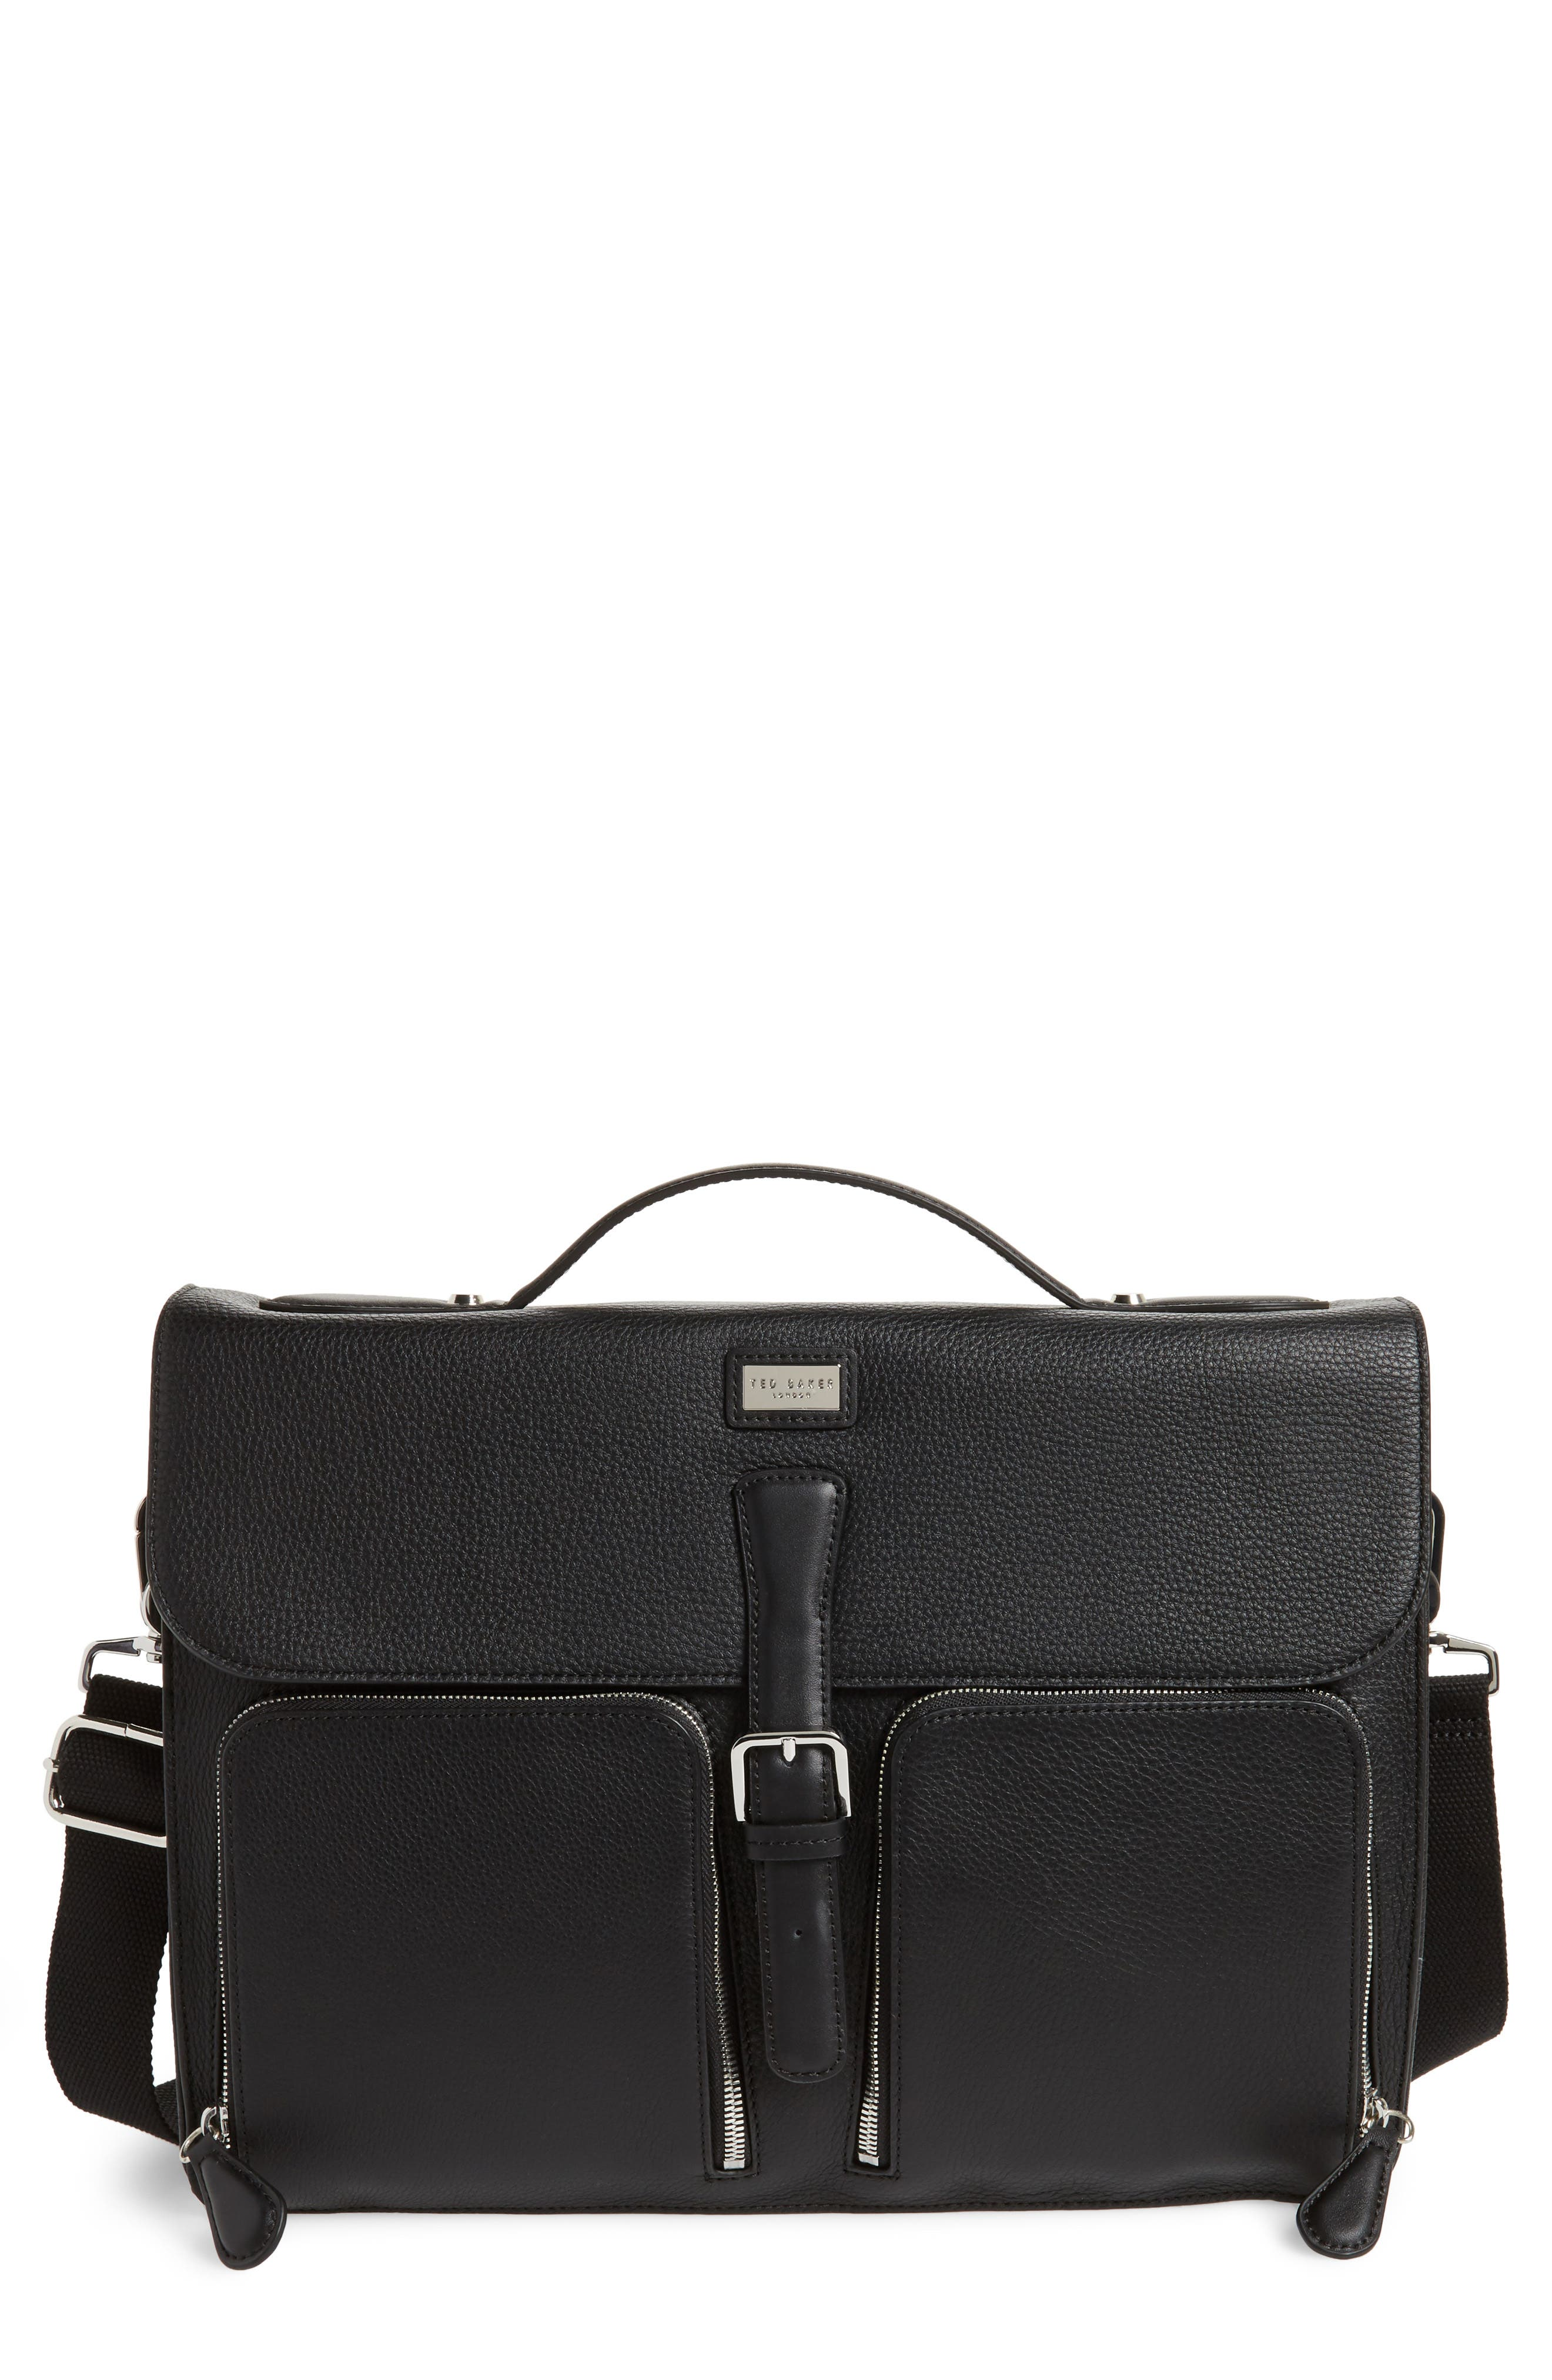 e9f8c6bb14980 Ted Baker Munch Leather Satchel Briefcase - Black